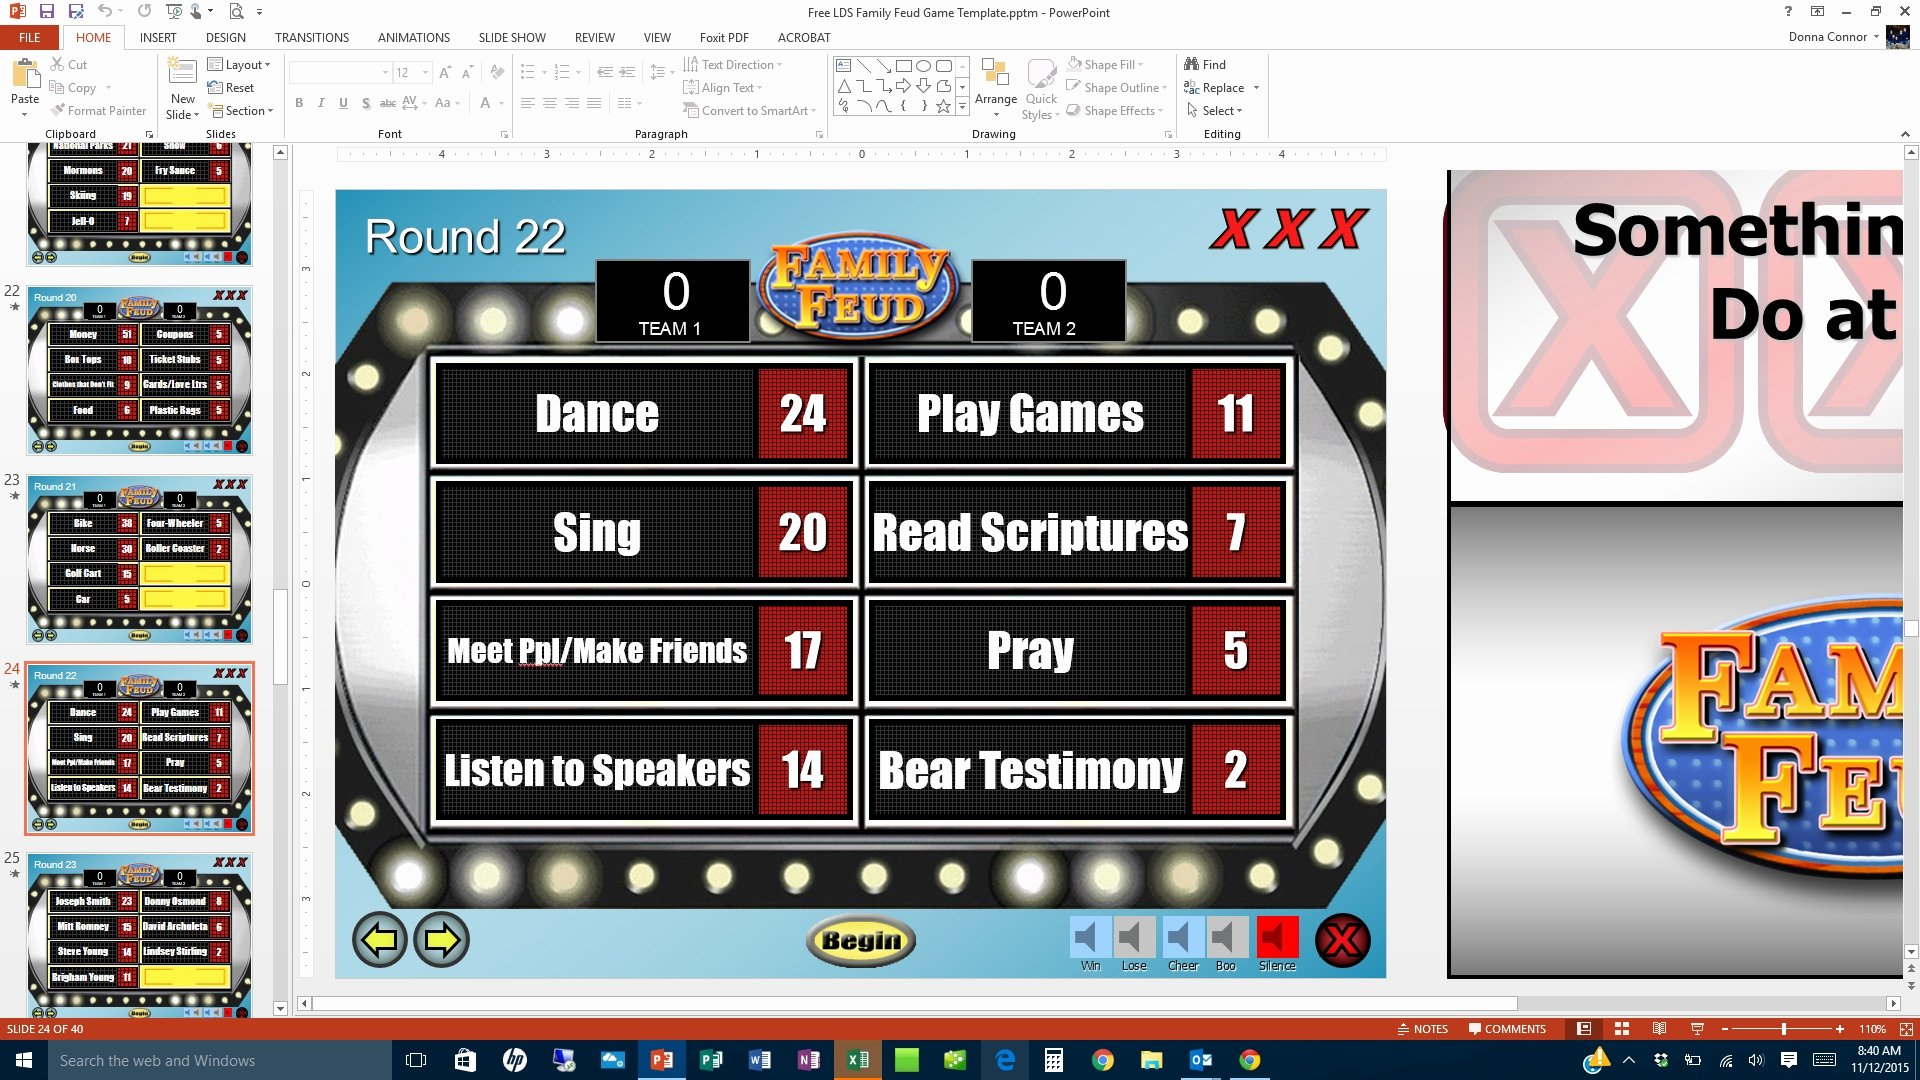 Family Feud Game Template Elegant Family Feud Game Template